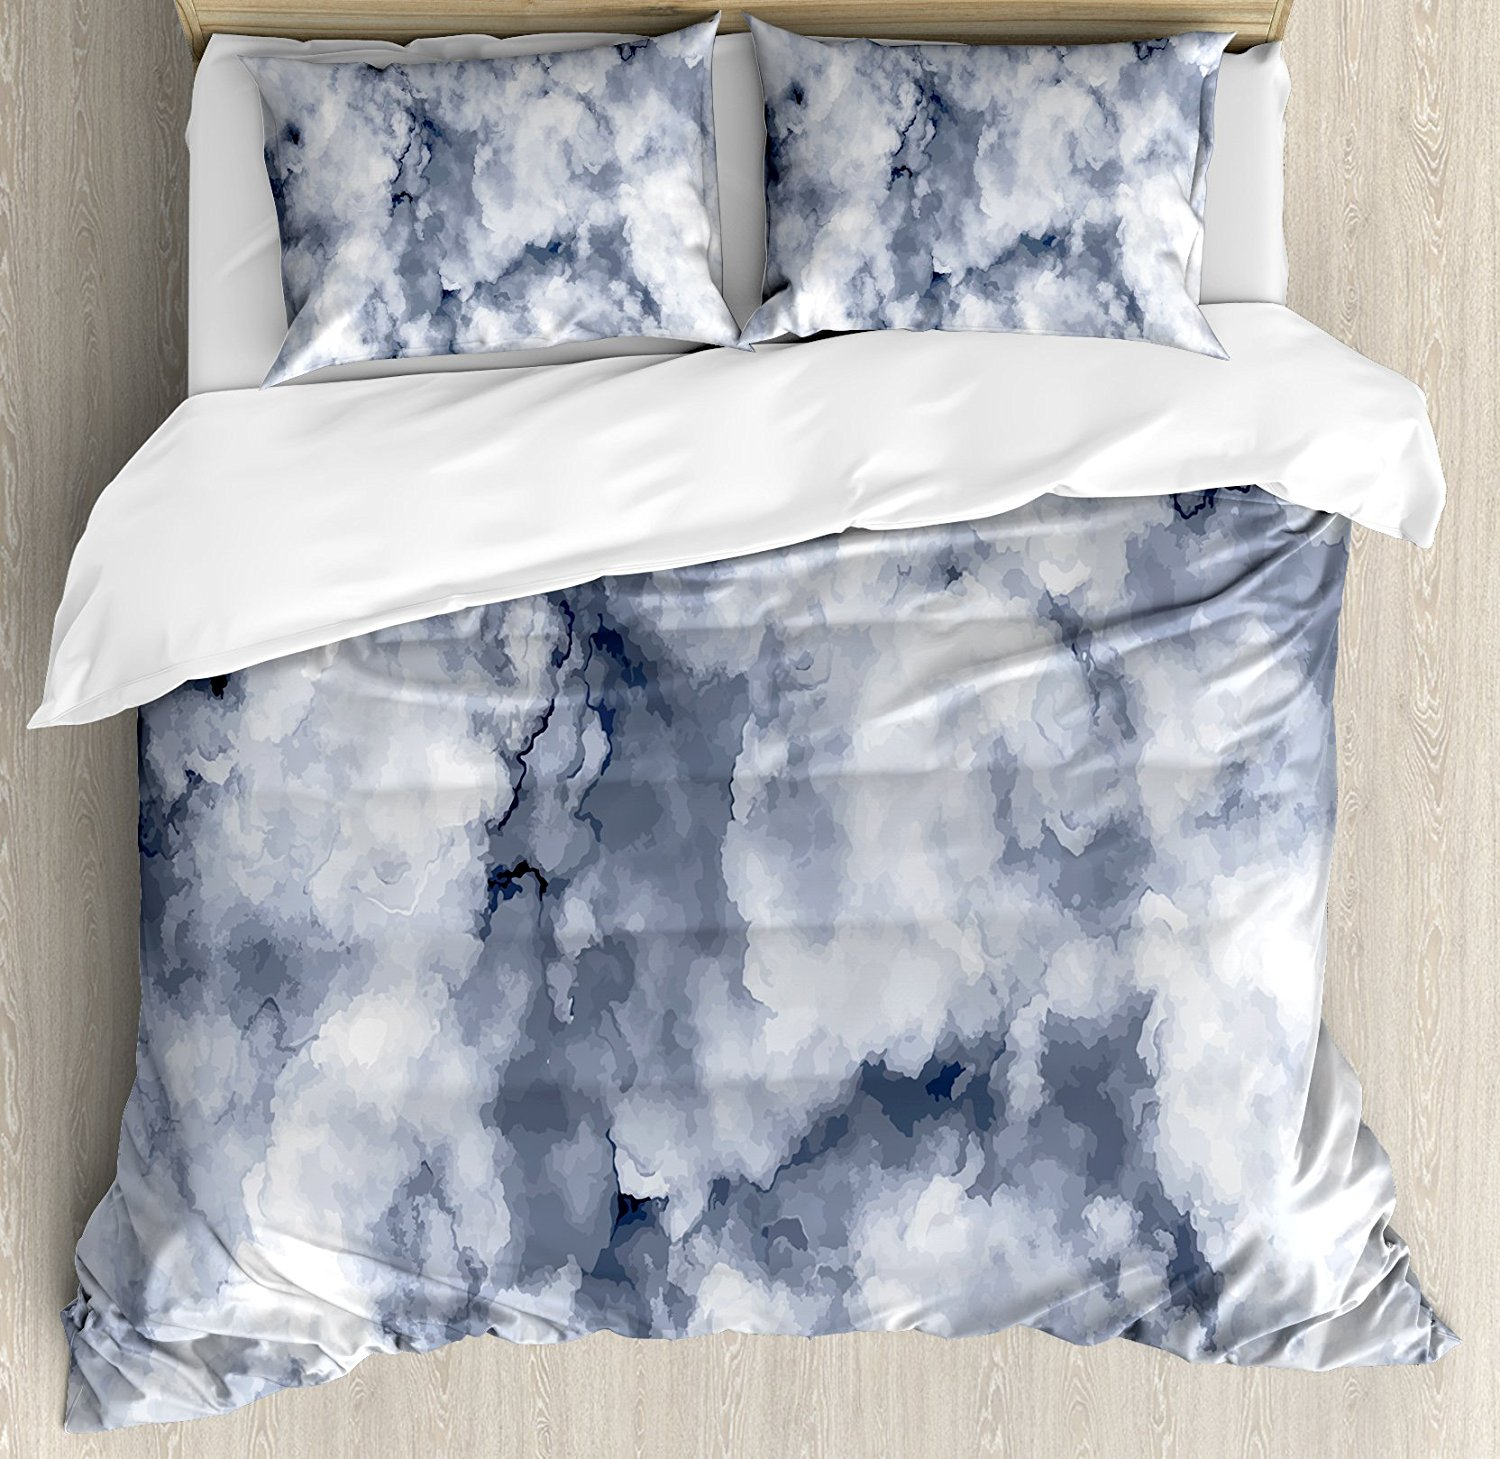 Ambesonne Marble Duvet Cover Set Queen Size, Cloudy Stylized Artistic Marble Pattern with Foggy Effects Abstract Display, Decorative 3 Piece Bedding Set with 2 Pillow Shams, Cadet Blue Dust